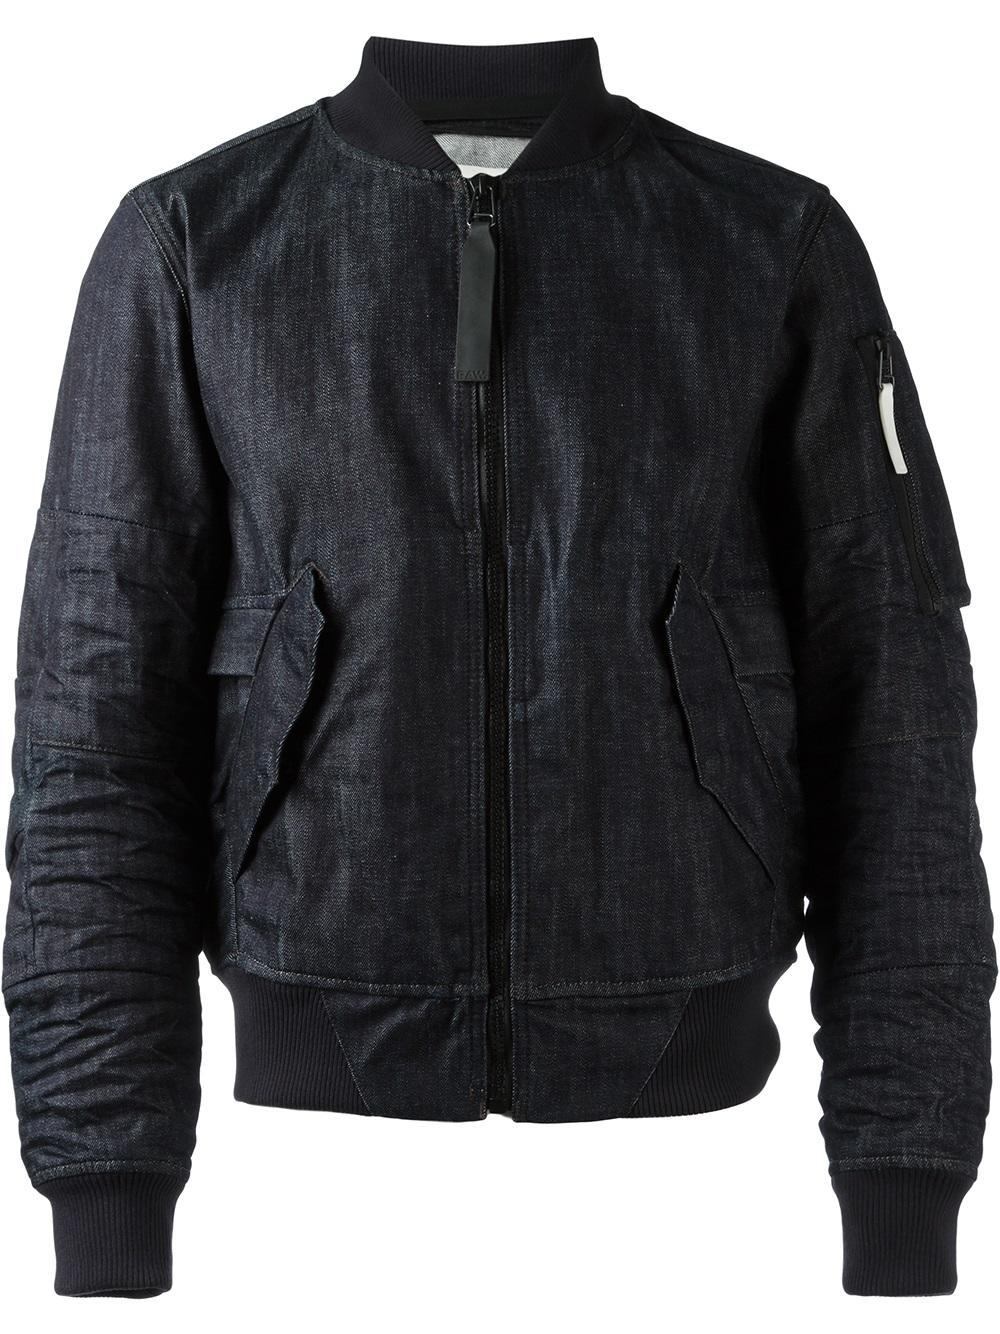 g star raw denim bomber jacket in blue for men lyst. Black Bedroom Furniture Sets. Home Design Ideas